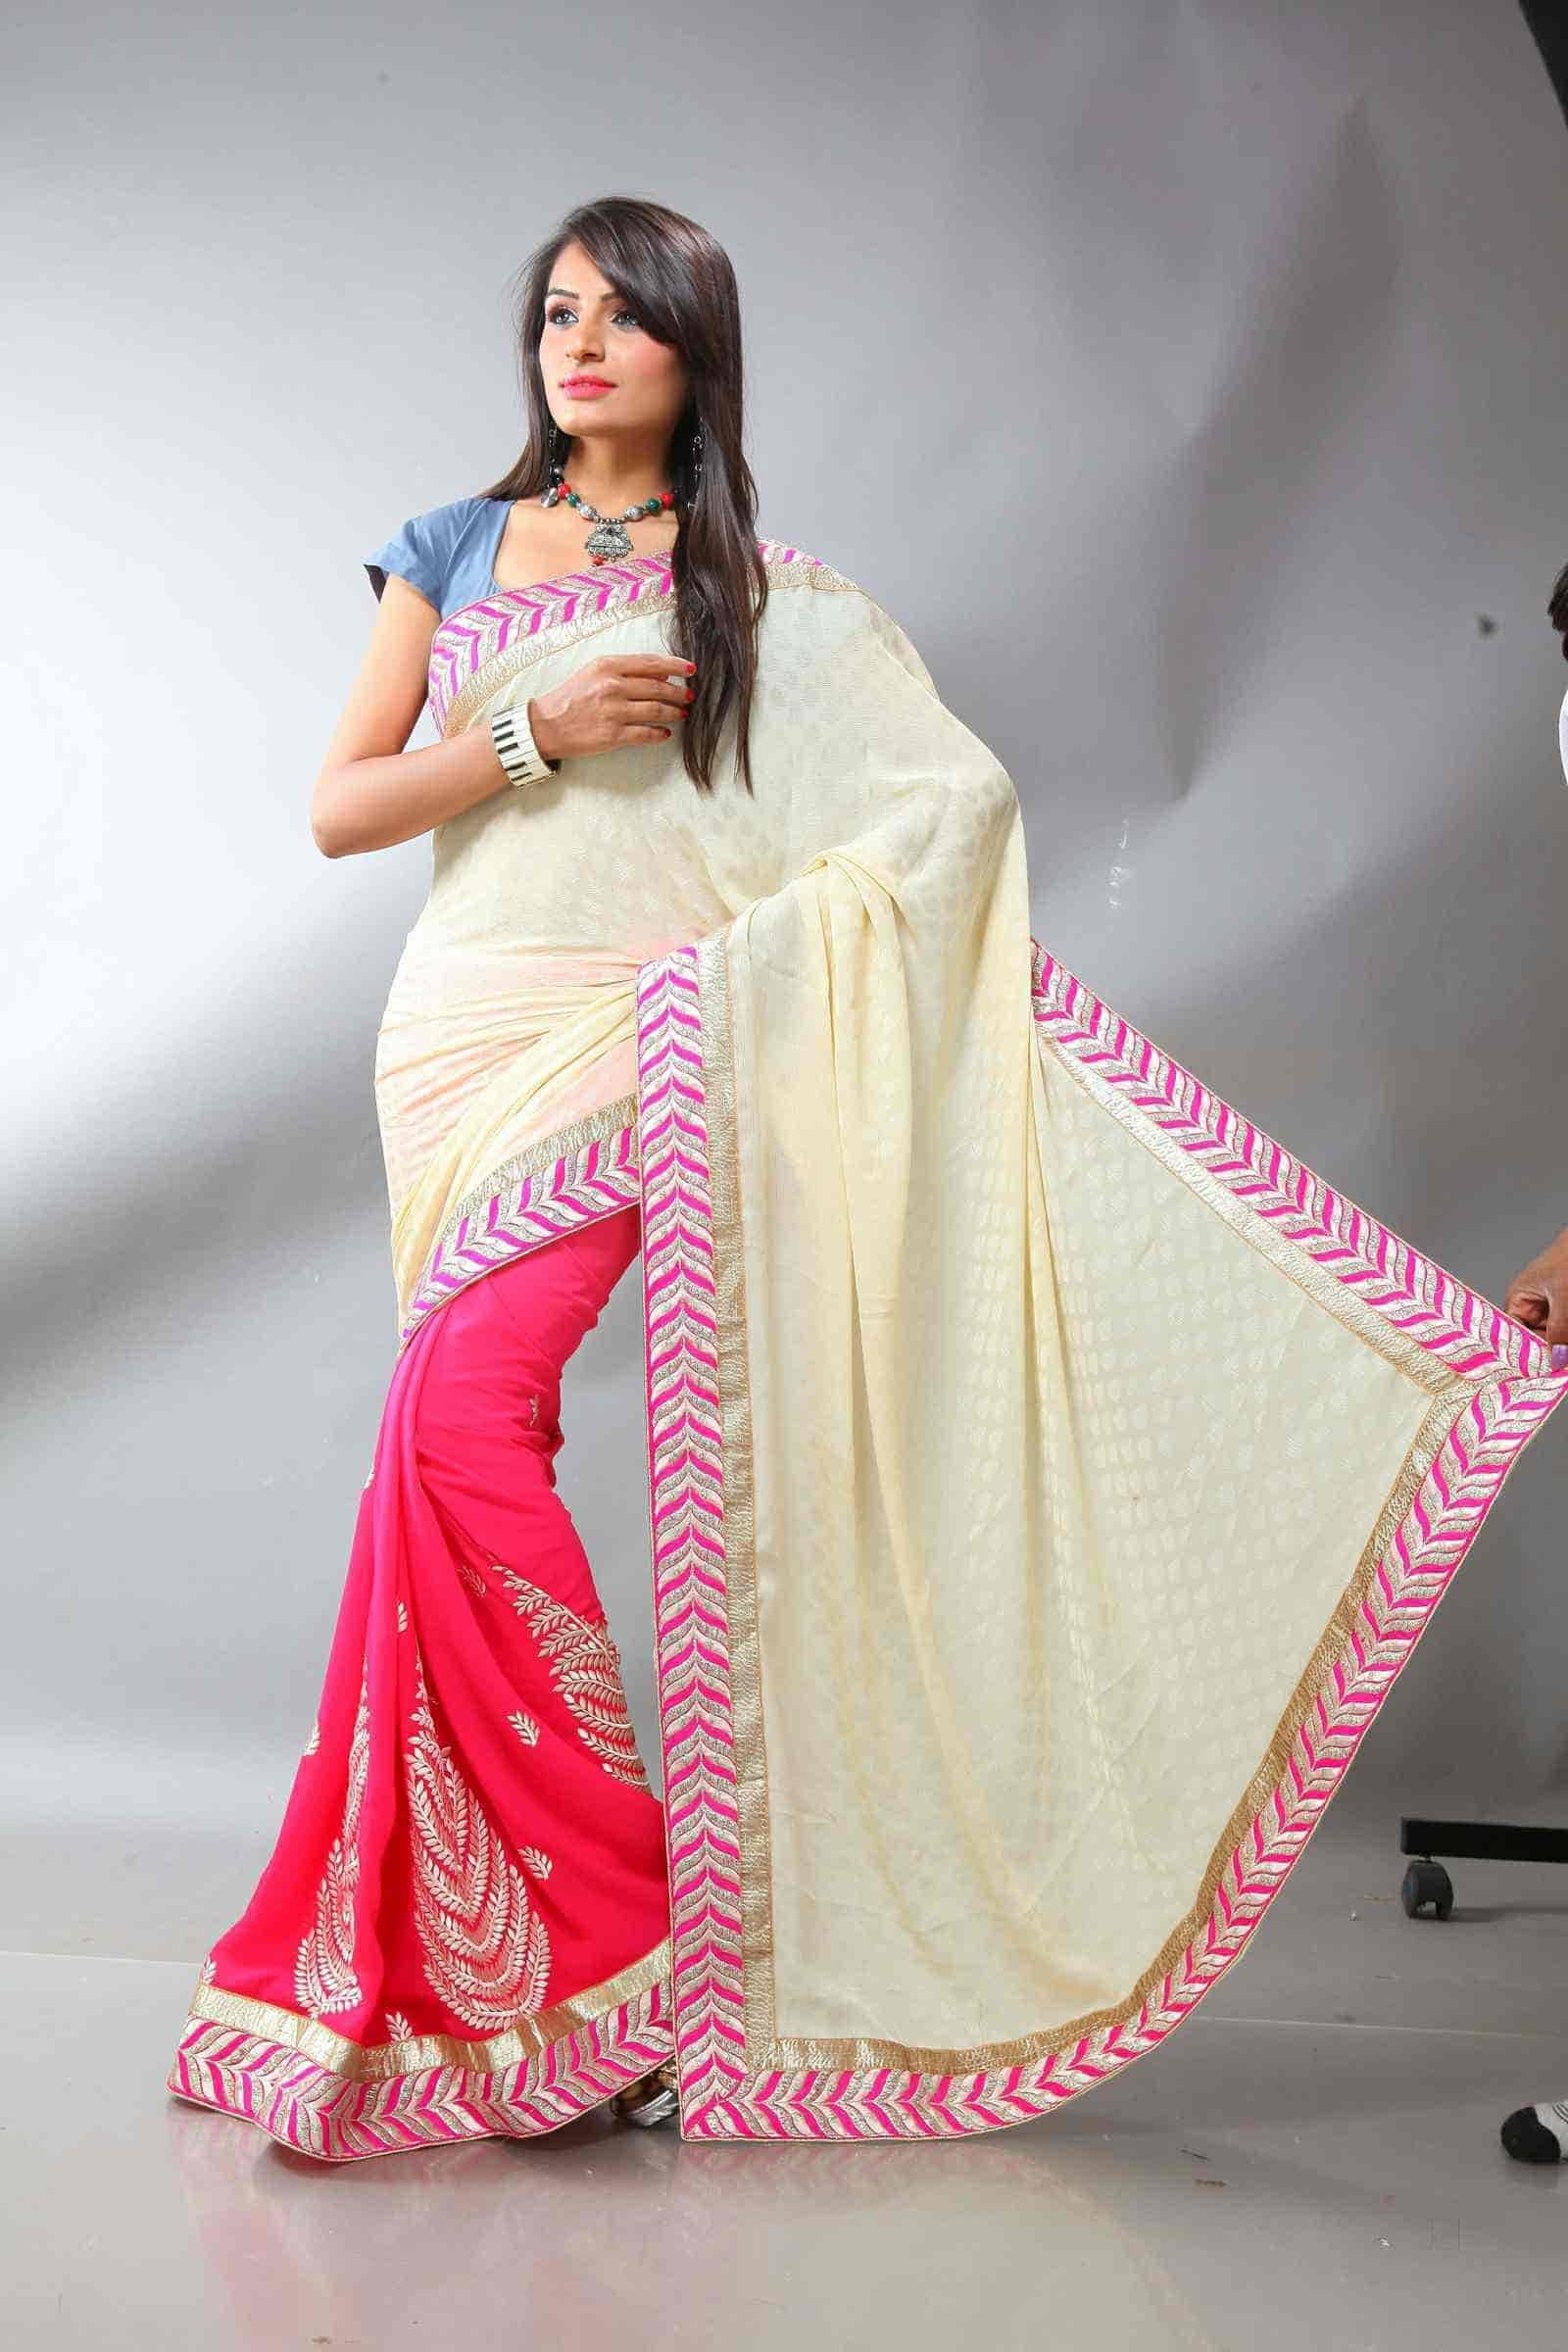 shree babosa fab, ring road - saree manufacturers in surat - justdial